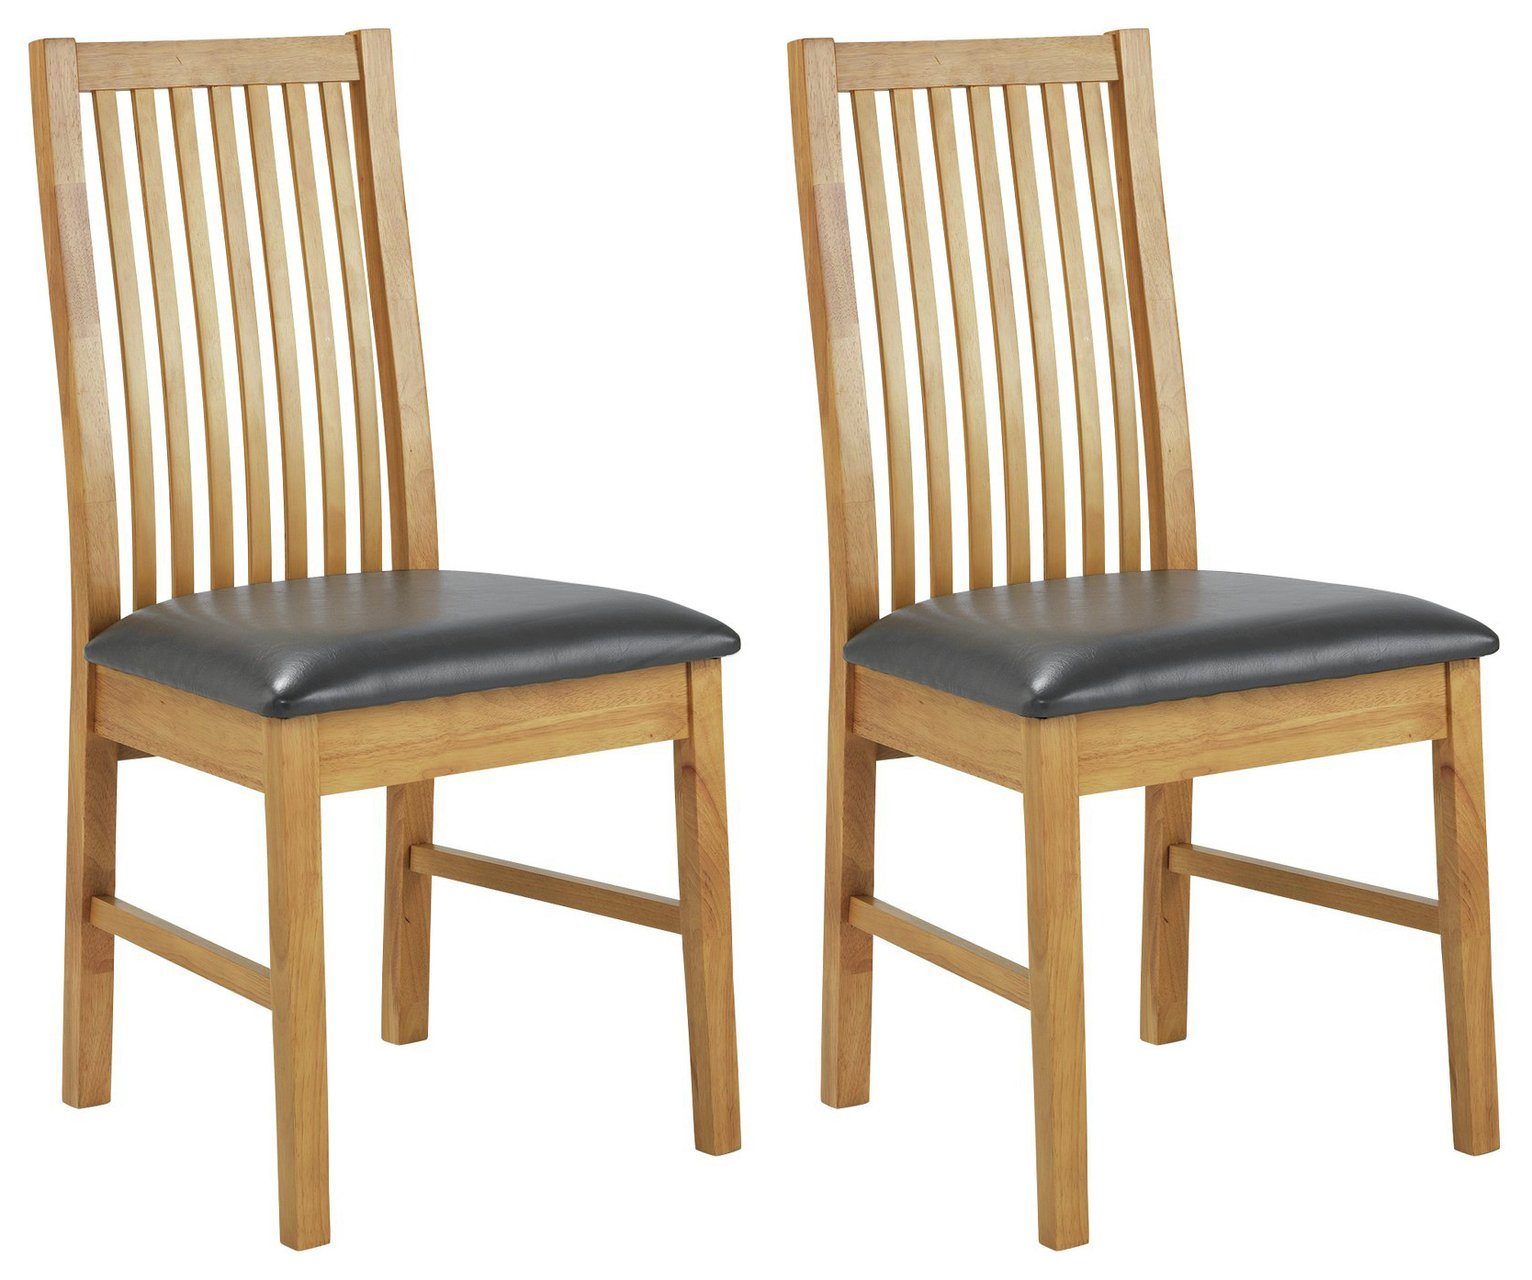 calais dining chair high back pair. Black Bedroom Furniture Sets. Home Design Ideas